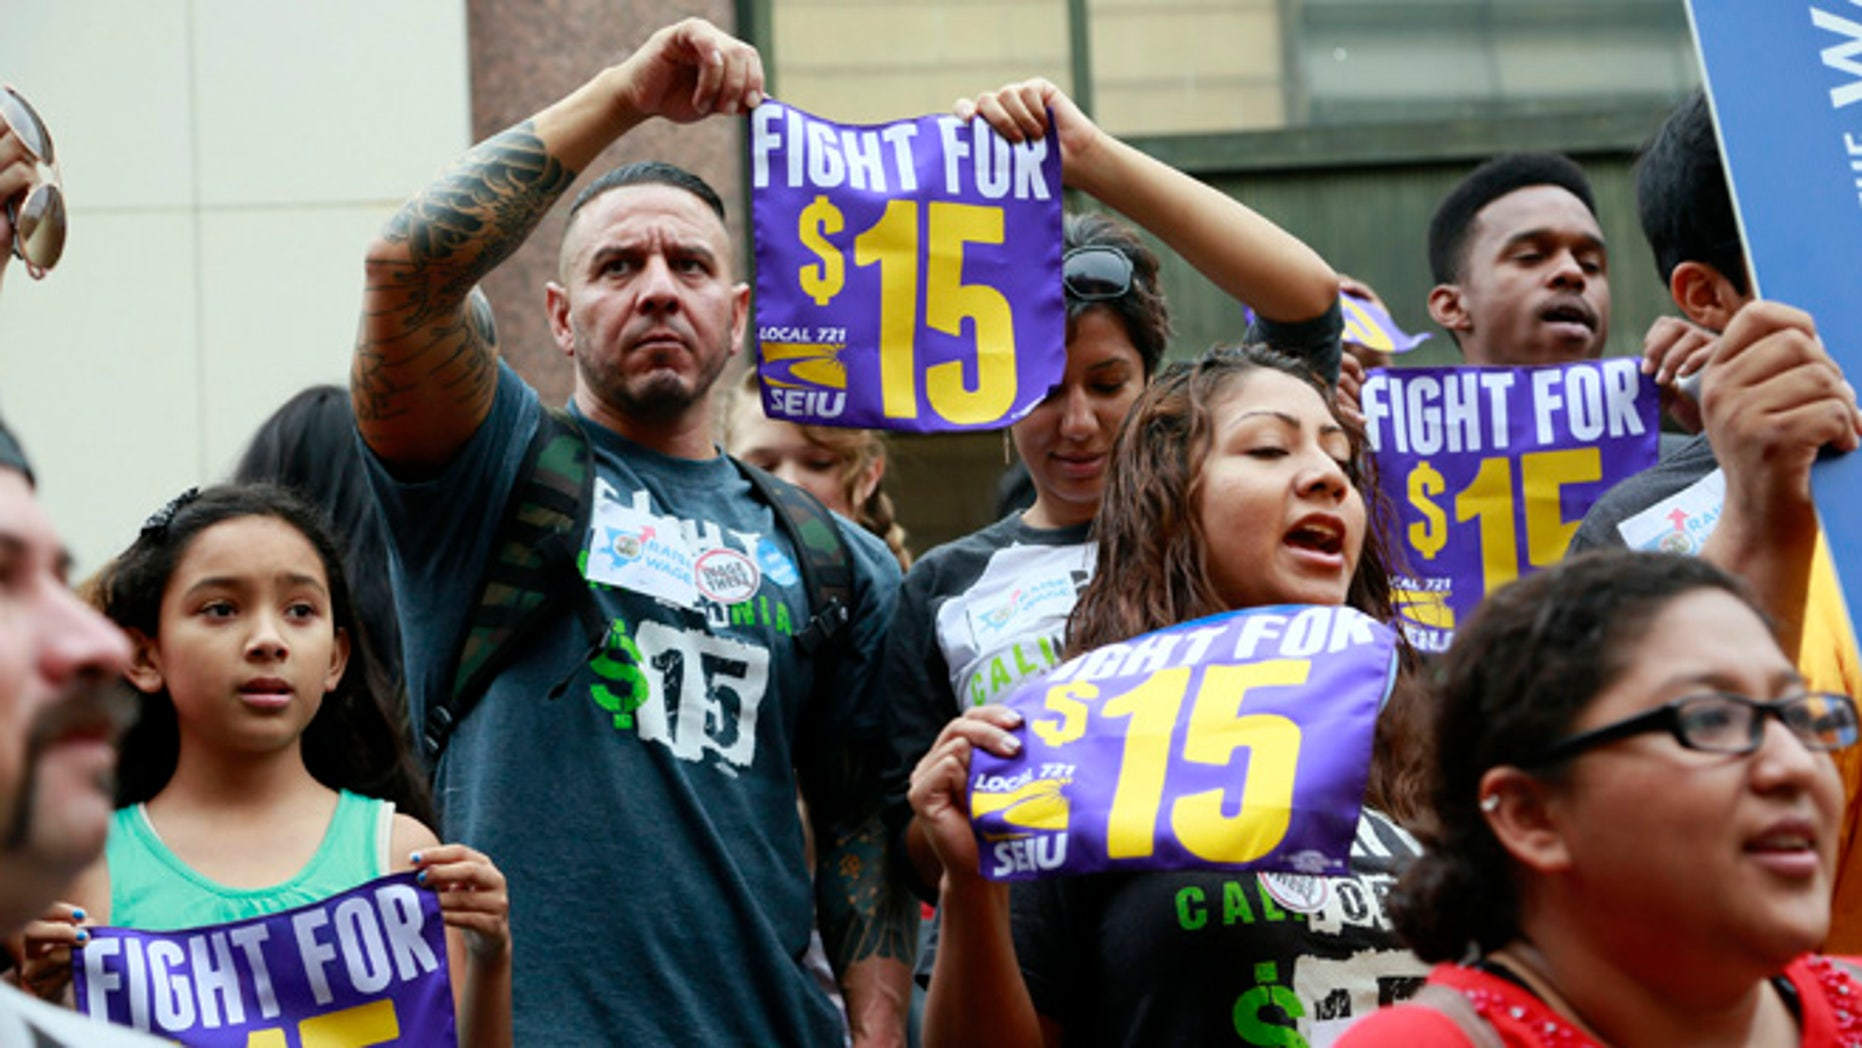 FILE - In this Tuesday, July 21, 2015 file photo, workers hold a rally in Los Angeles in support of the Los Angeles County Board of Supervisors' proposed minimum wage ordinance. On Saturday, March 26, California legislators and labor unions reached an agreement that will take the state's minimum wage from $10 to $15 an hour. (AP Photo/Nick Ut)